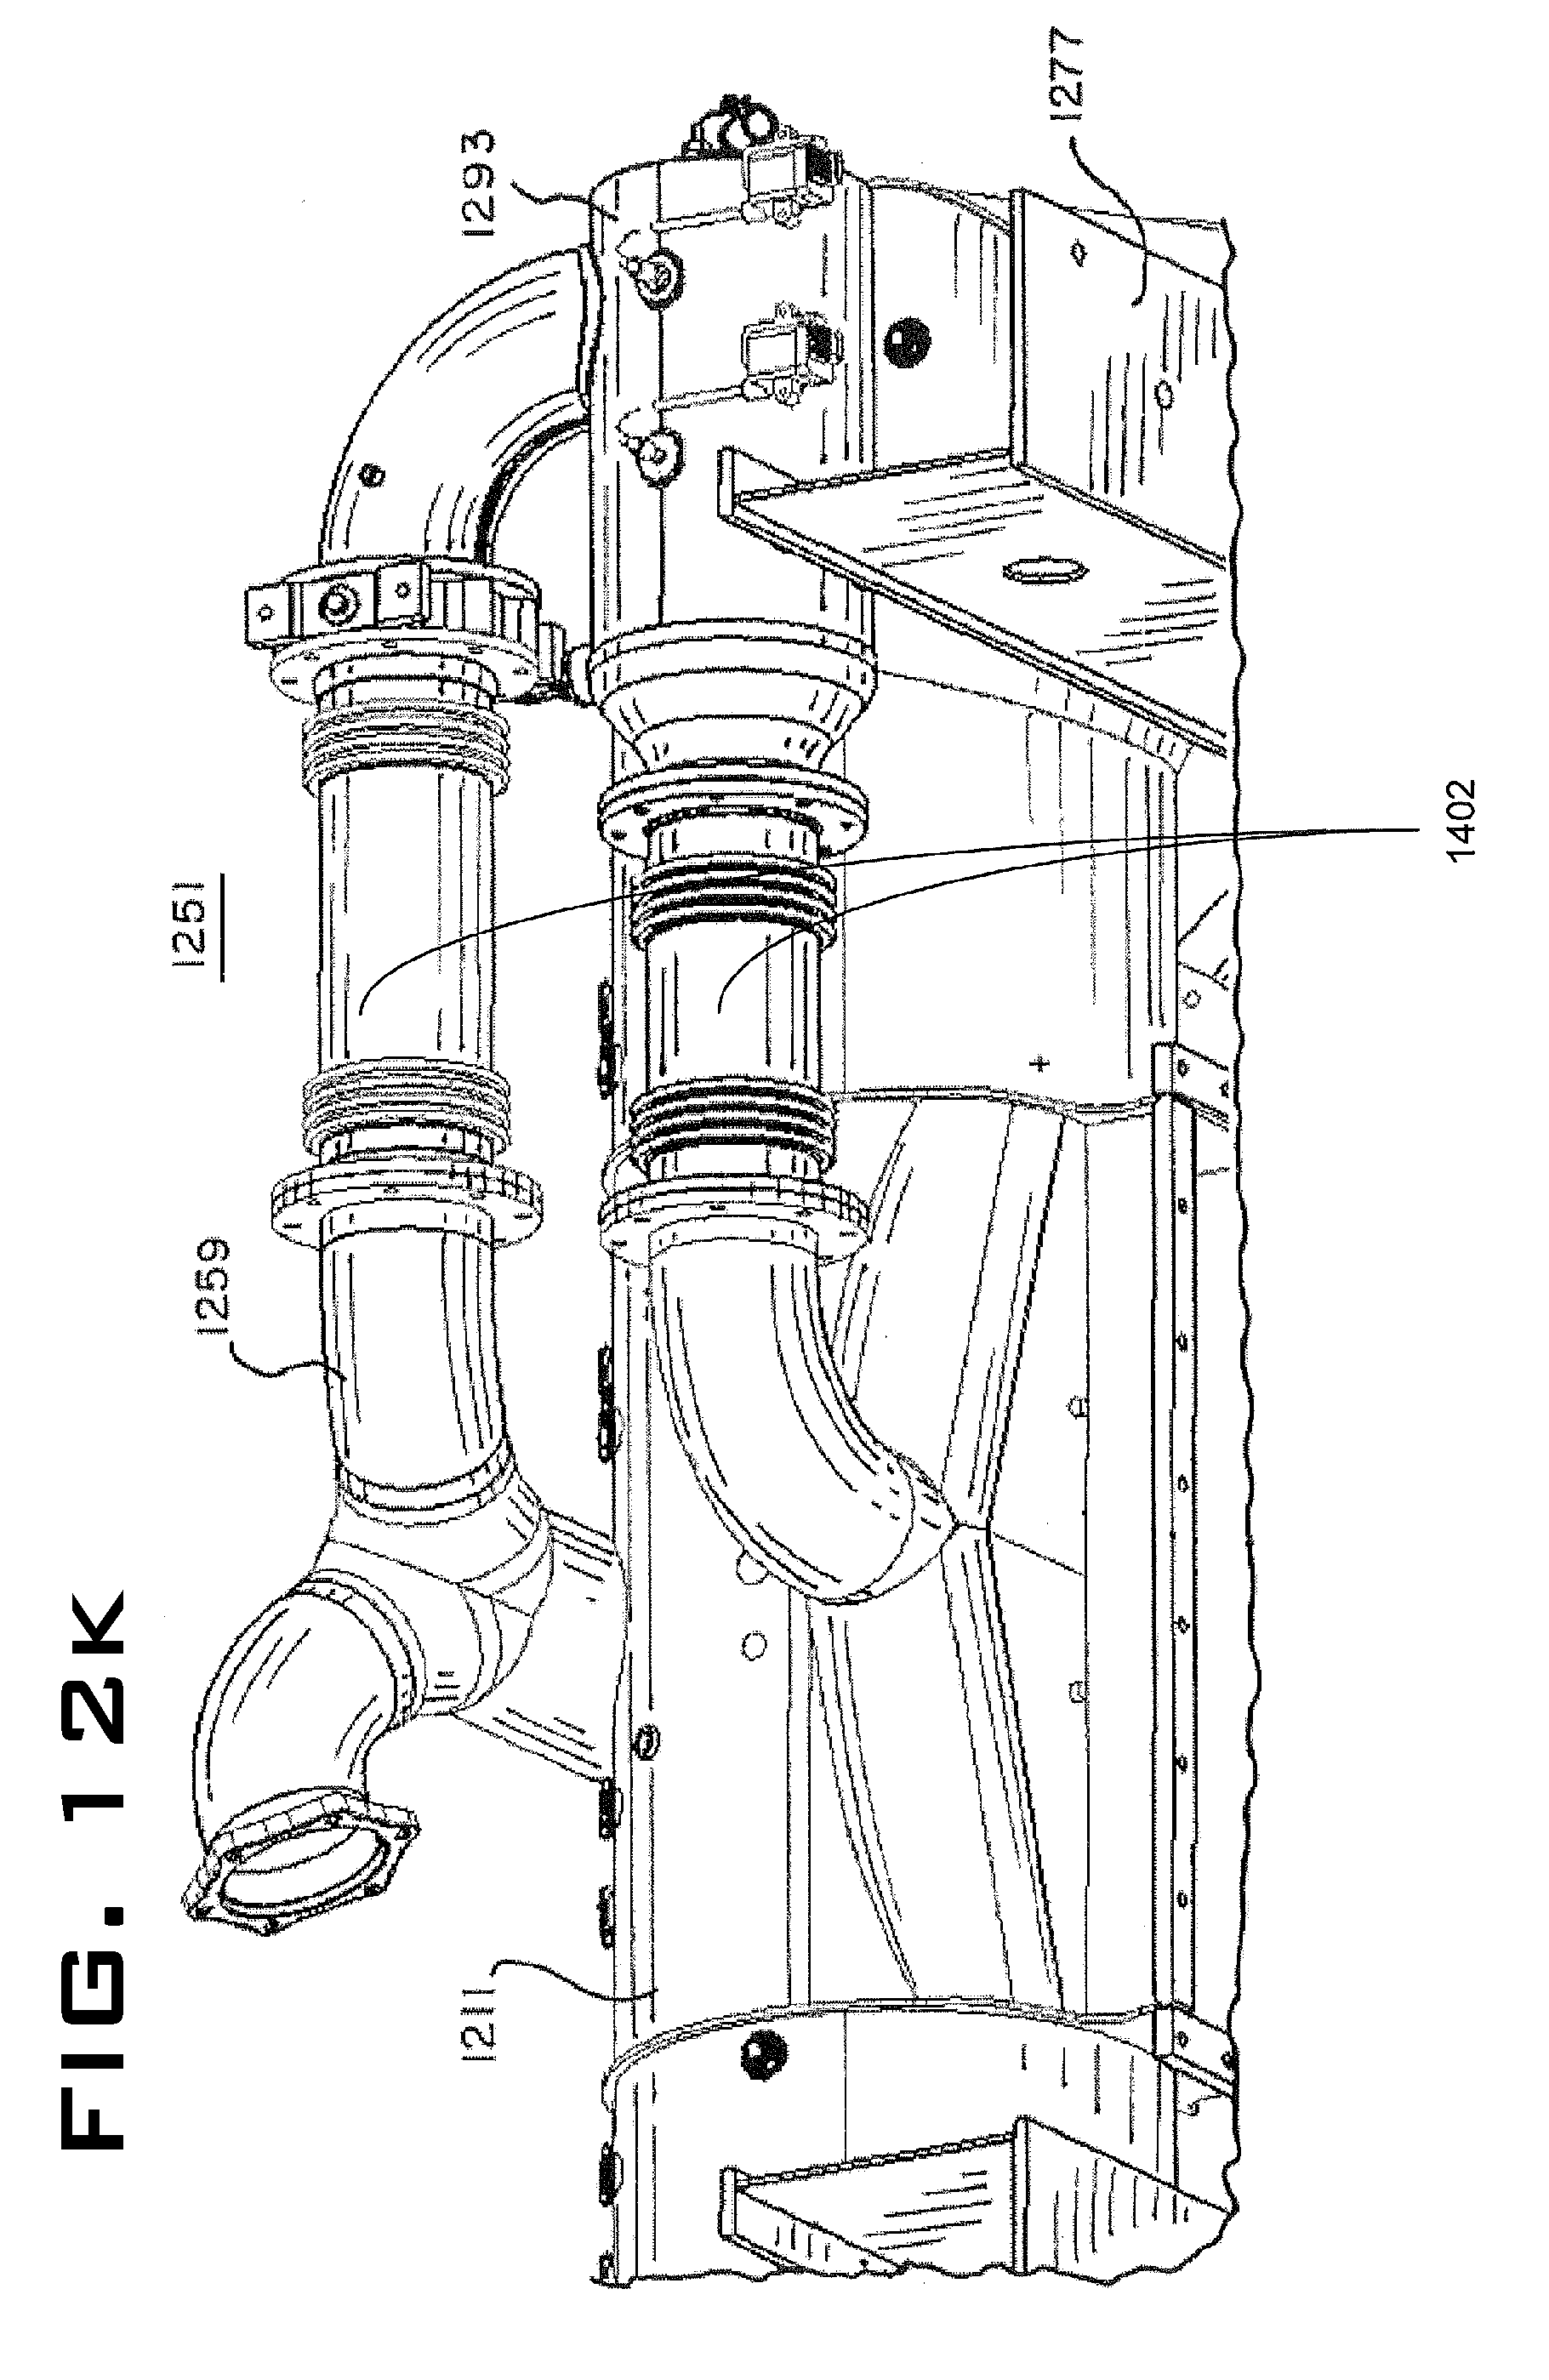 Patent Us20120079819 Burner Arrangement For A Two Stroke Lm324n Circuit Drawing